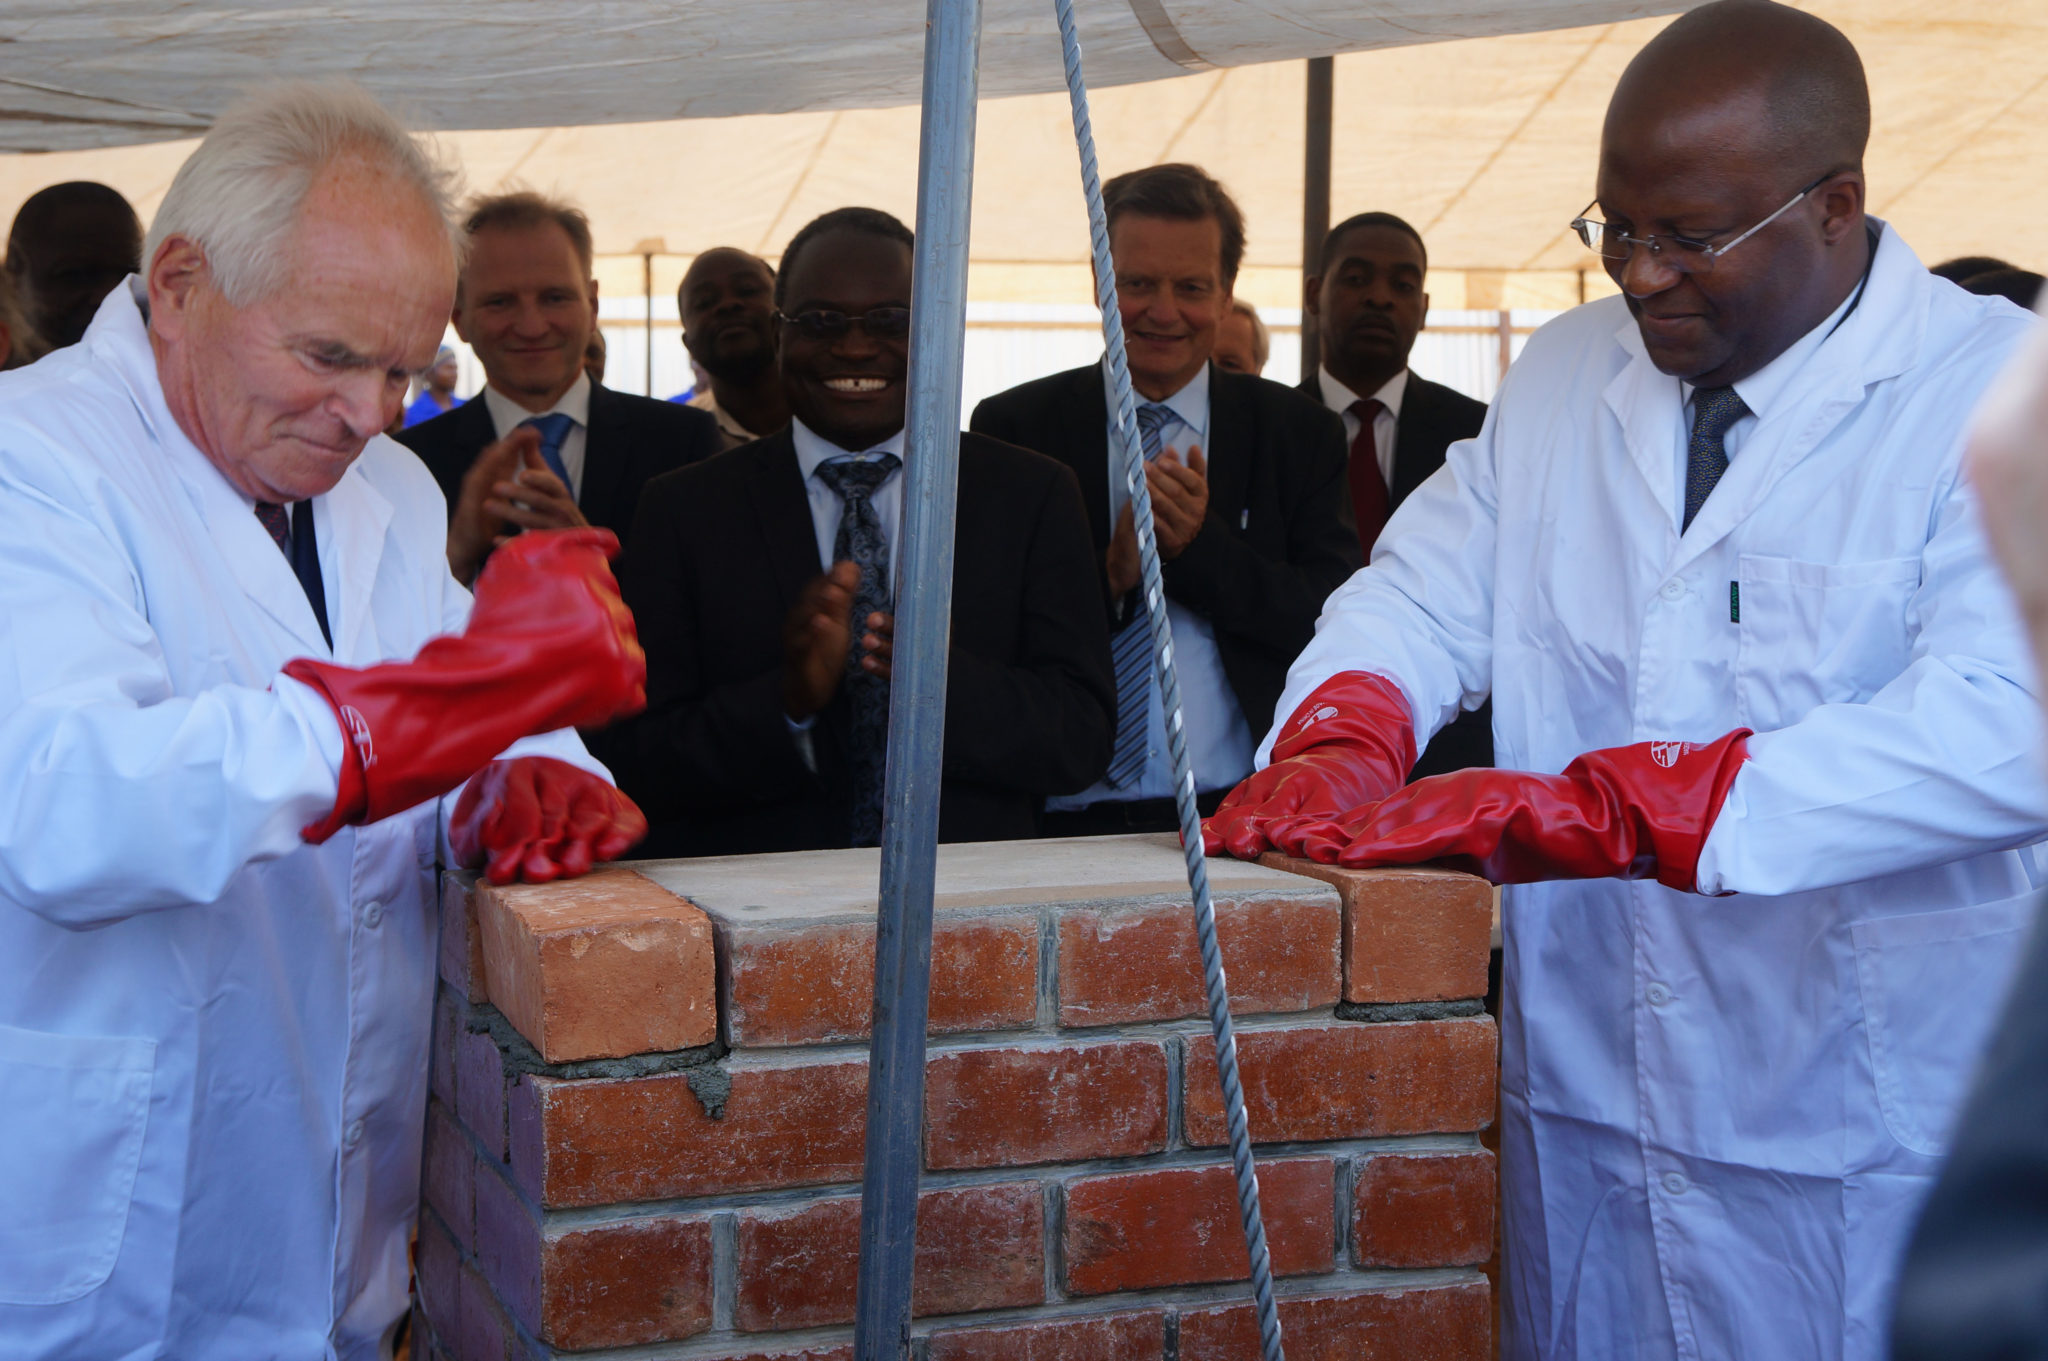 Foundation Stone Laying Ceremony for the Lilongwe Institute of Orthopaedics and Neurosurgery (LION)